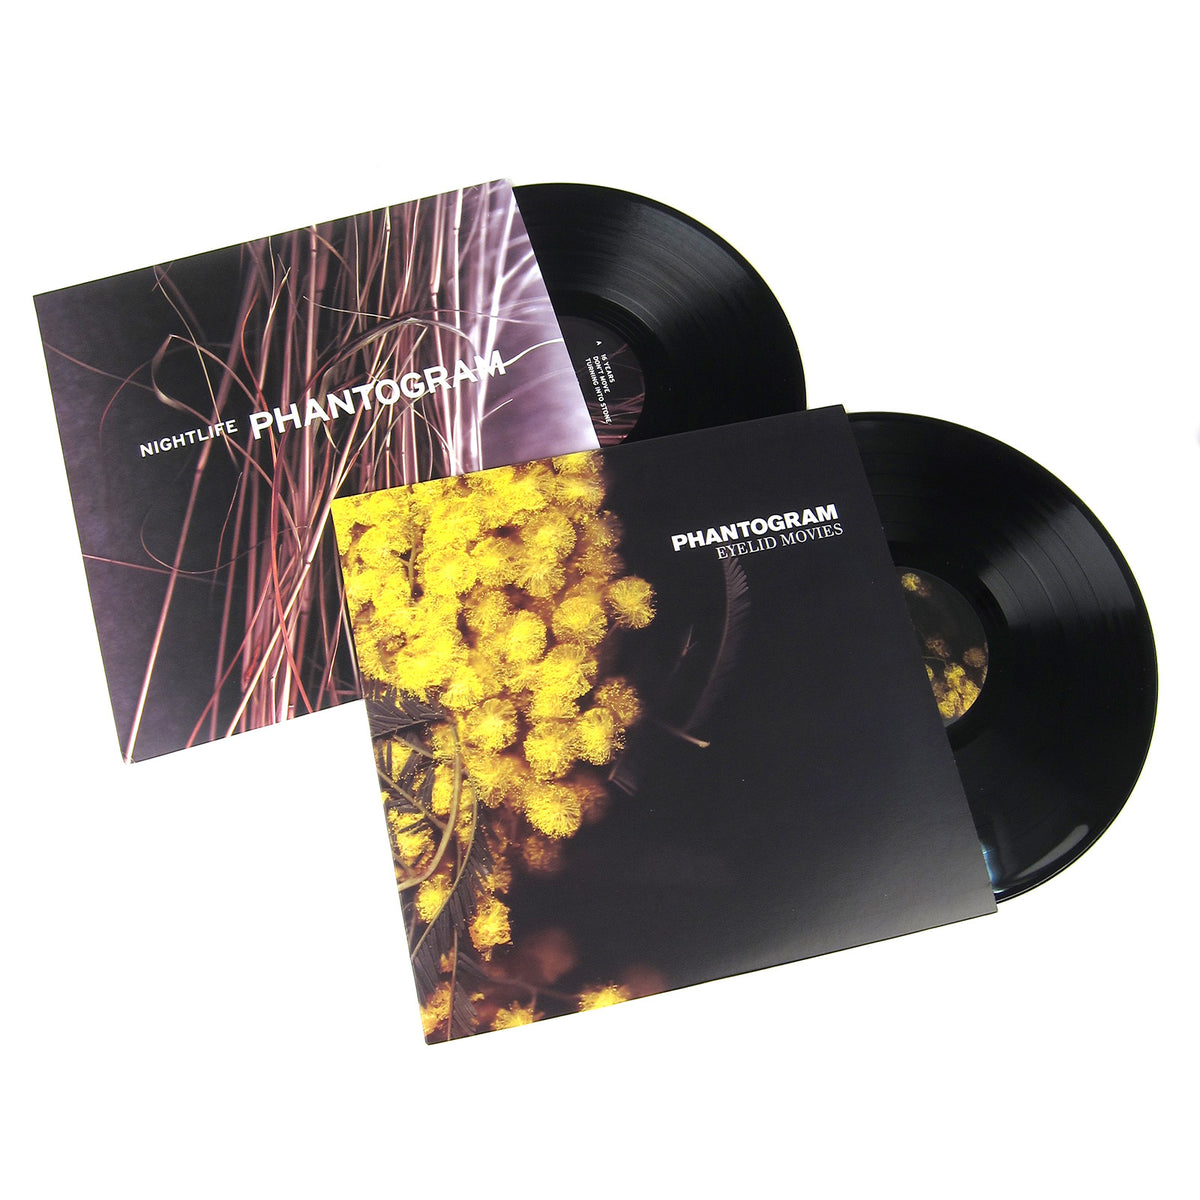 Phantogram: Vinyl LP Album Pack (Eyelid Movies, Nightlife)